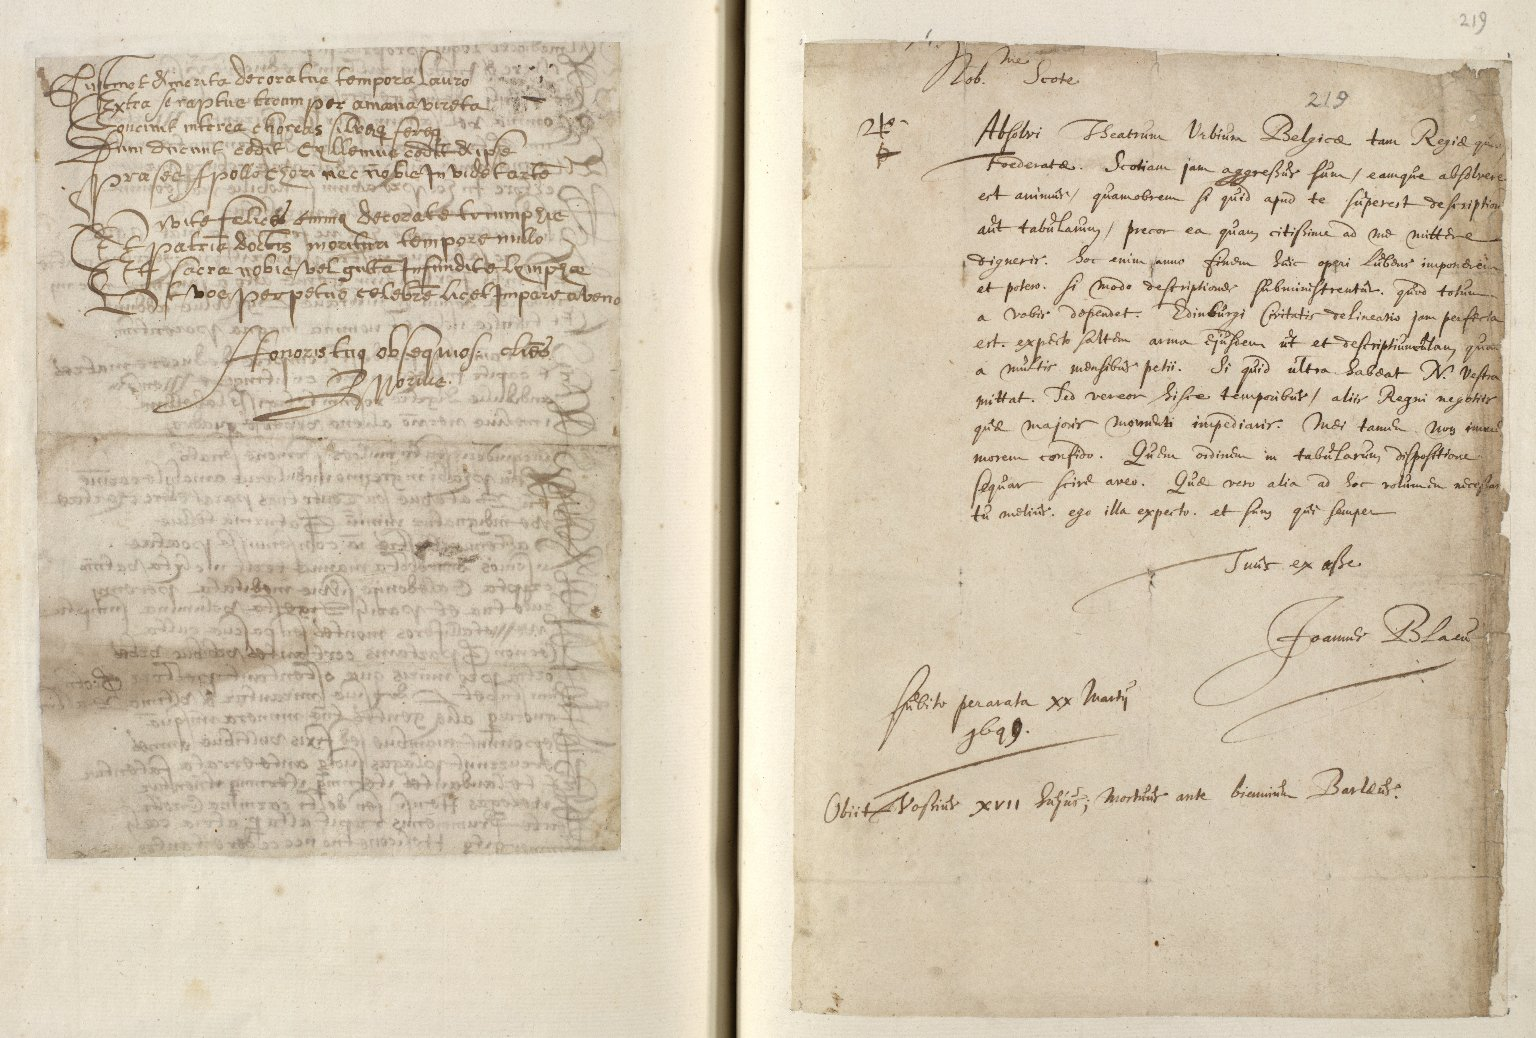 [A collection of ALS to Sir John Scot, Lord Scotstarvet, from W.J. and Joan Blaeu, Amsterdam] [19 of 27]